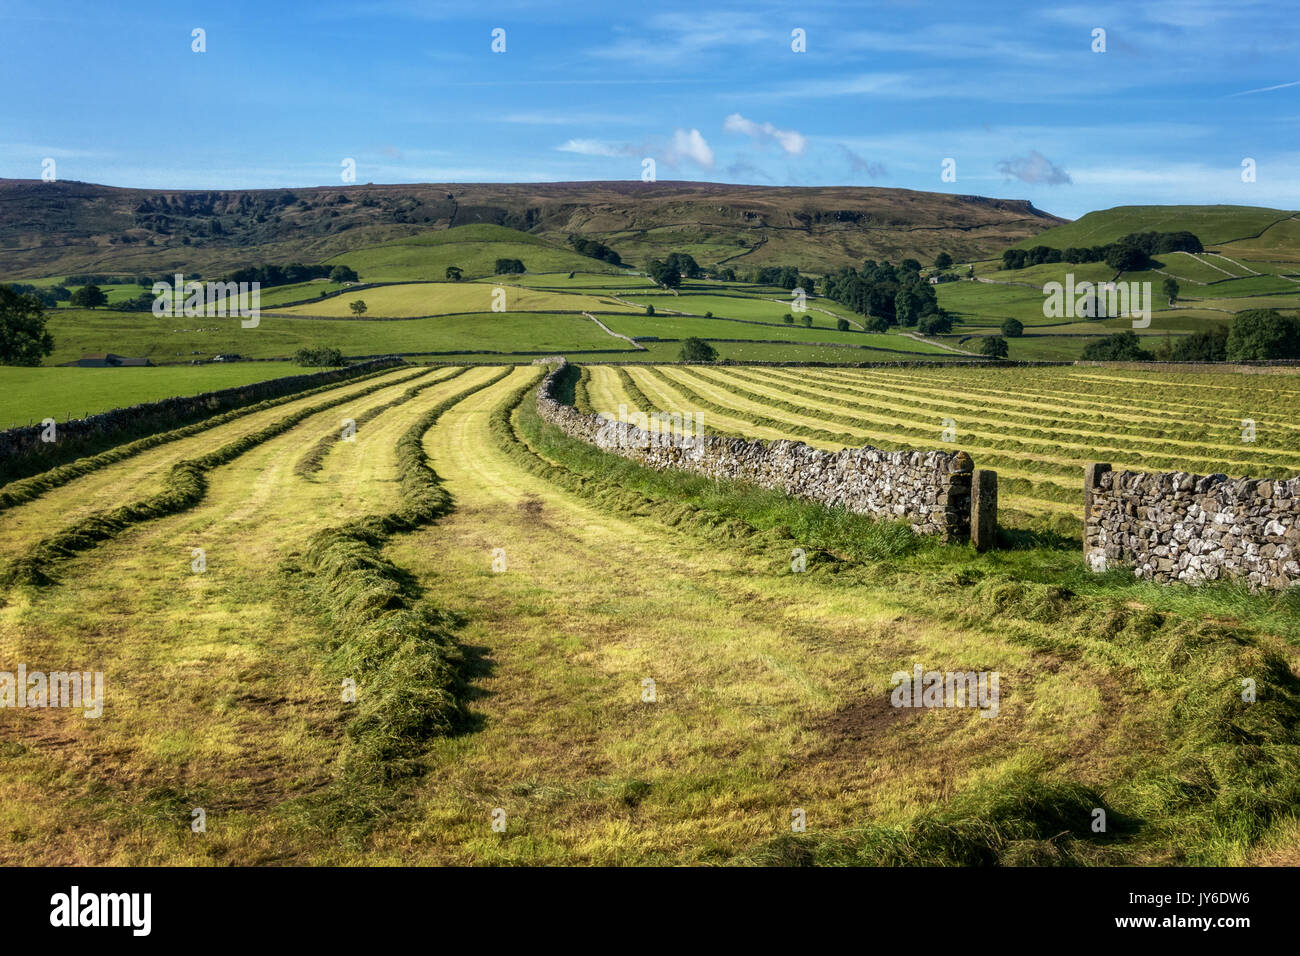 Looking into a freshly mown field of grass with a Yorkshire Dales limestone wall, Hebden, North Yorkshire, UK - Stock Image